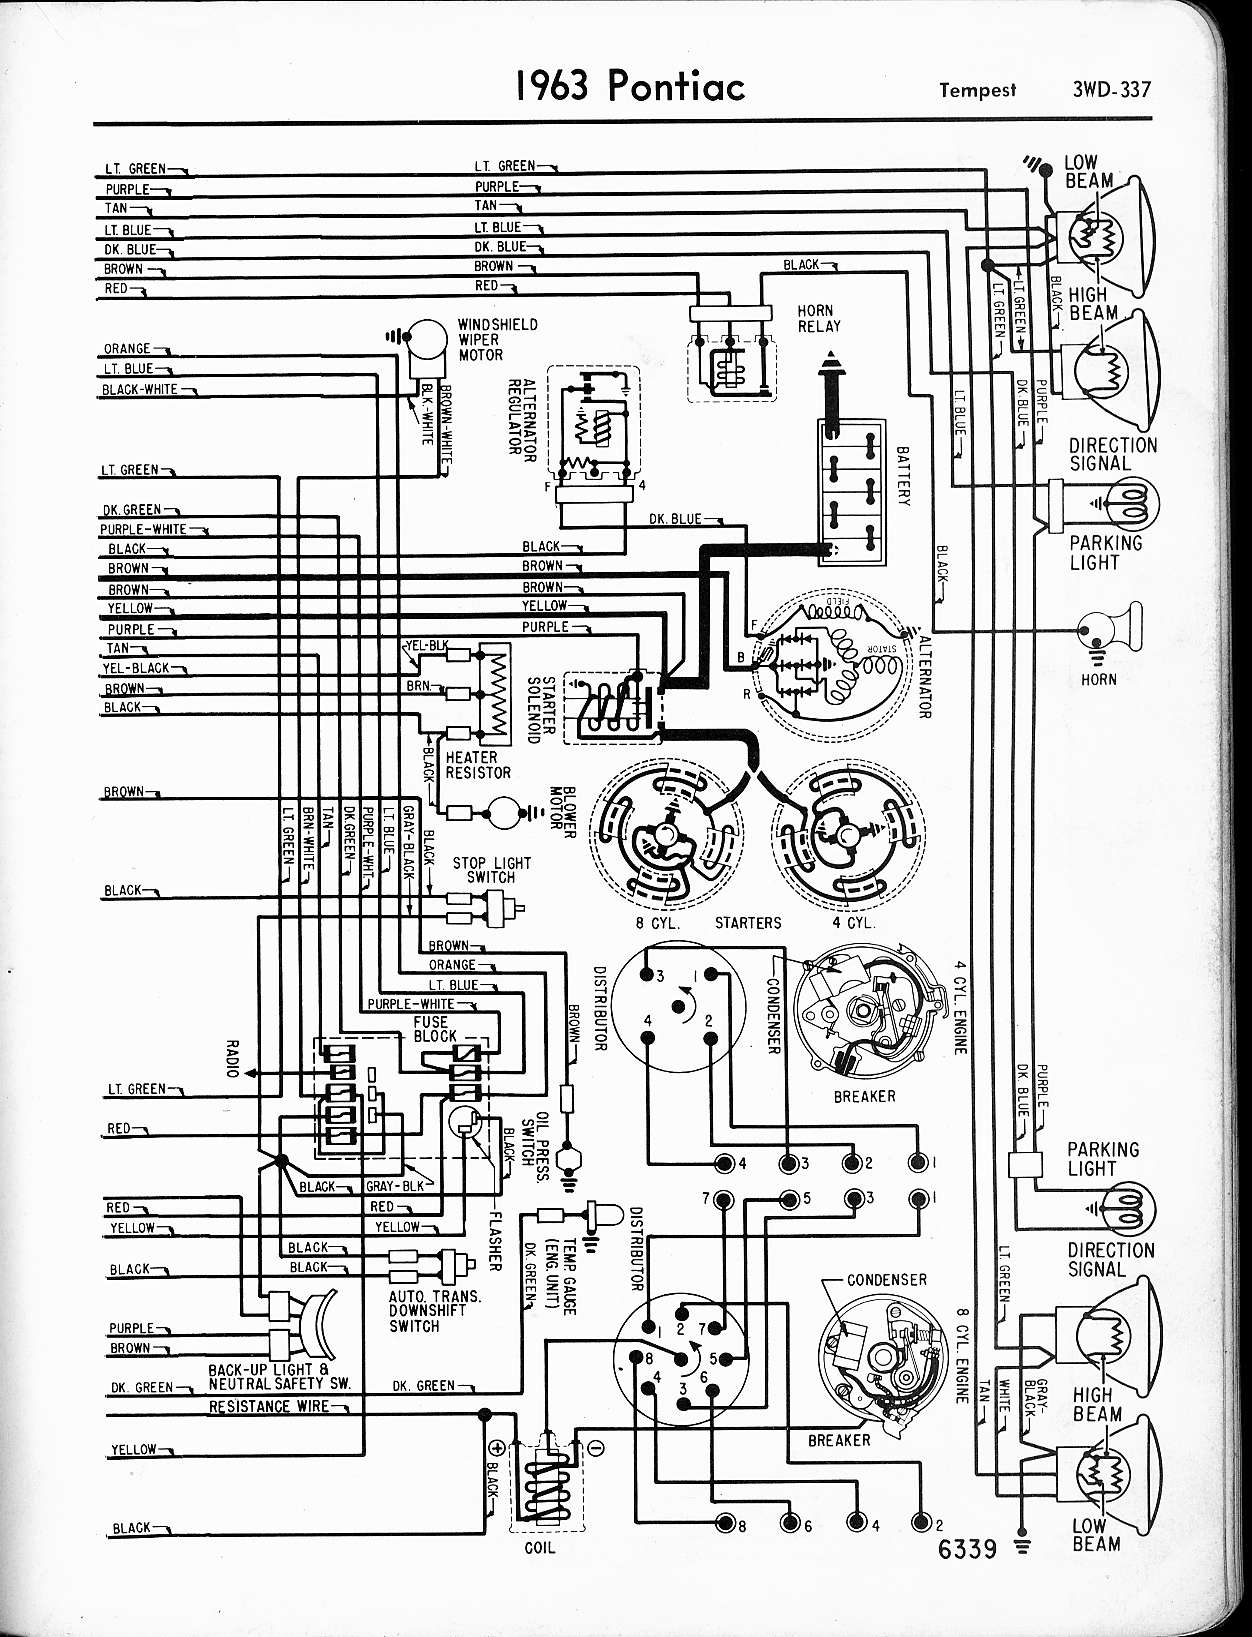 Wallace racing wiring diagrams rh wallaceracing 1968 pontiac gto wiring diagram 1969 pontiac gto wiring schematic